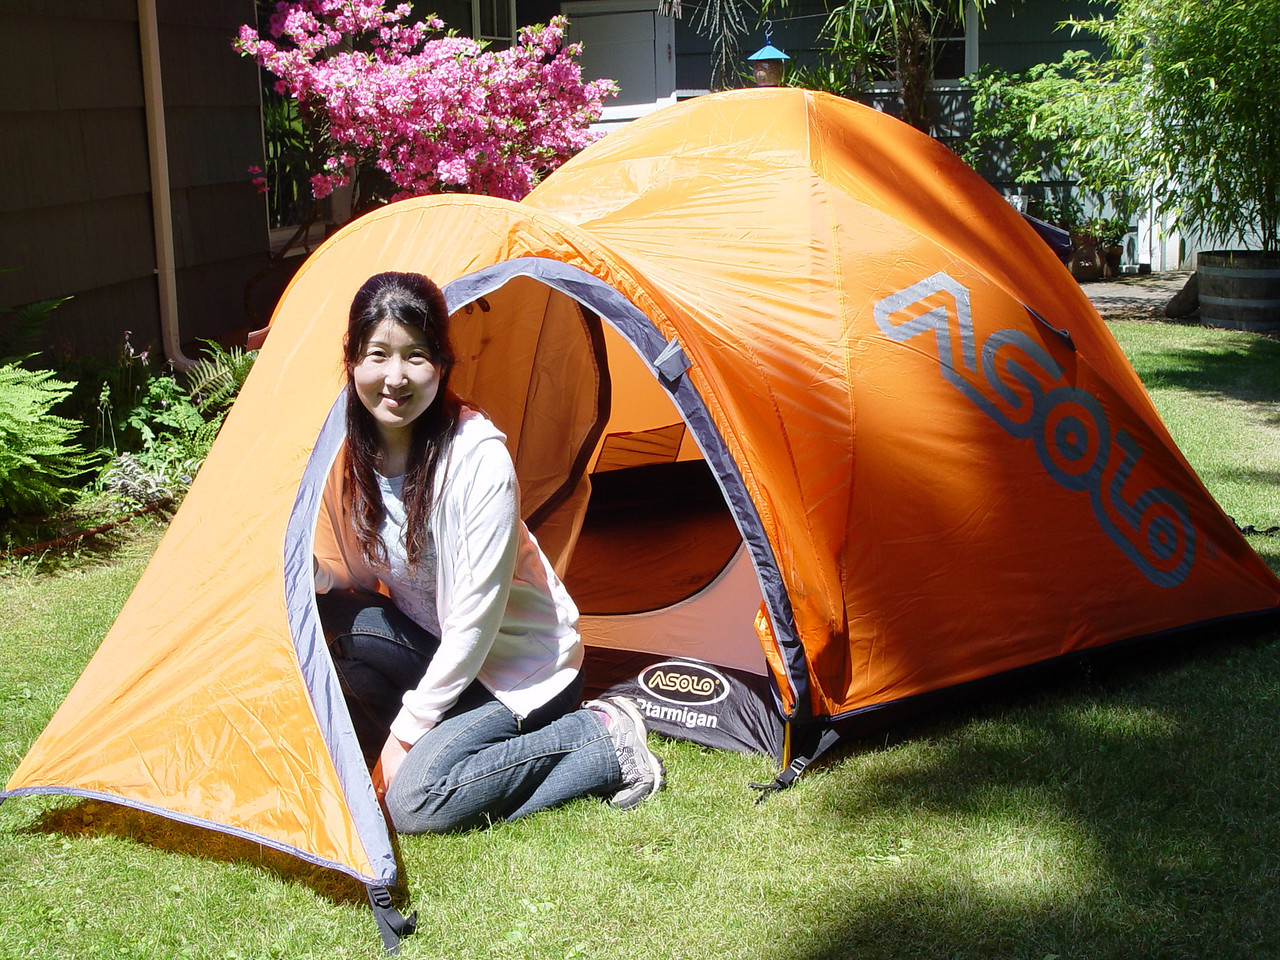 June 15th 2008 - Chiyoko checking out our new tent!